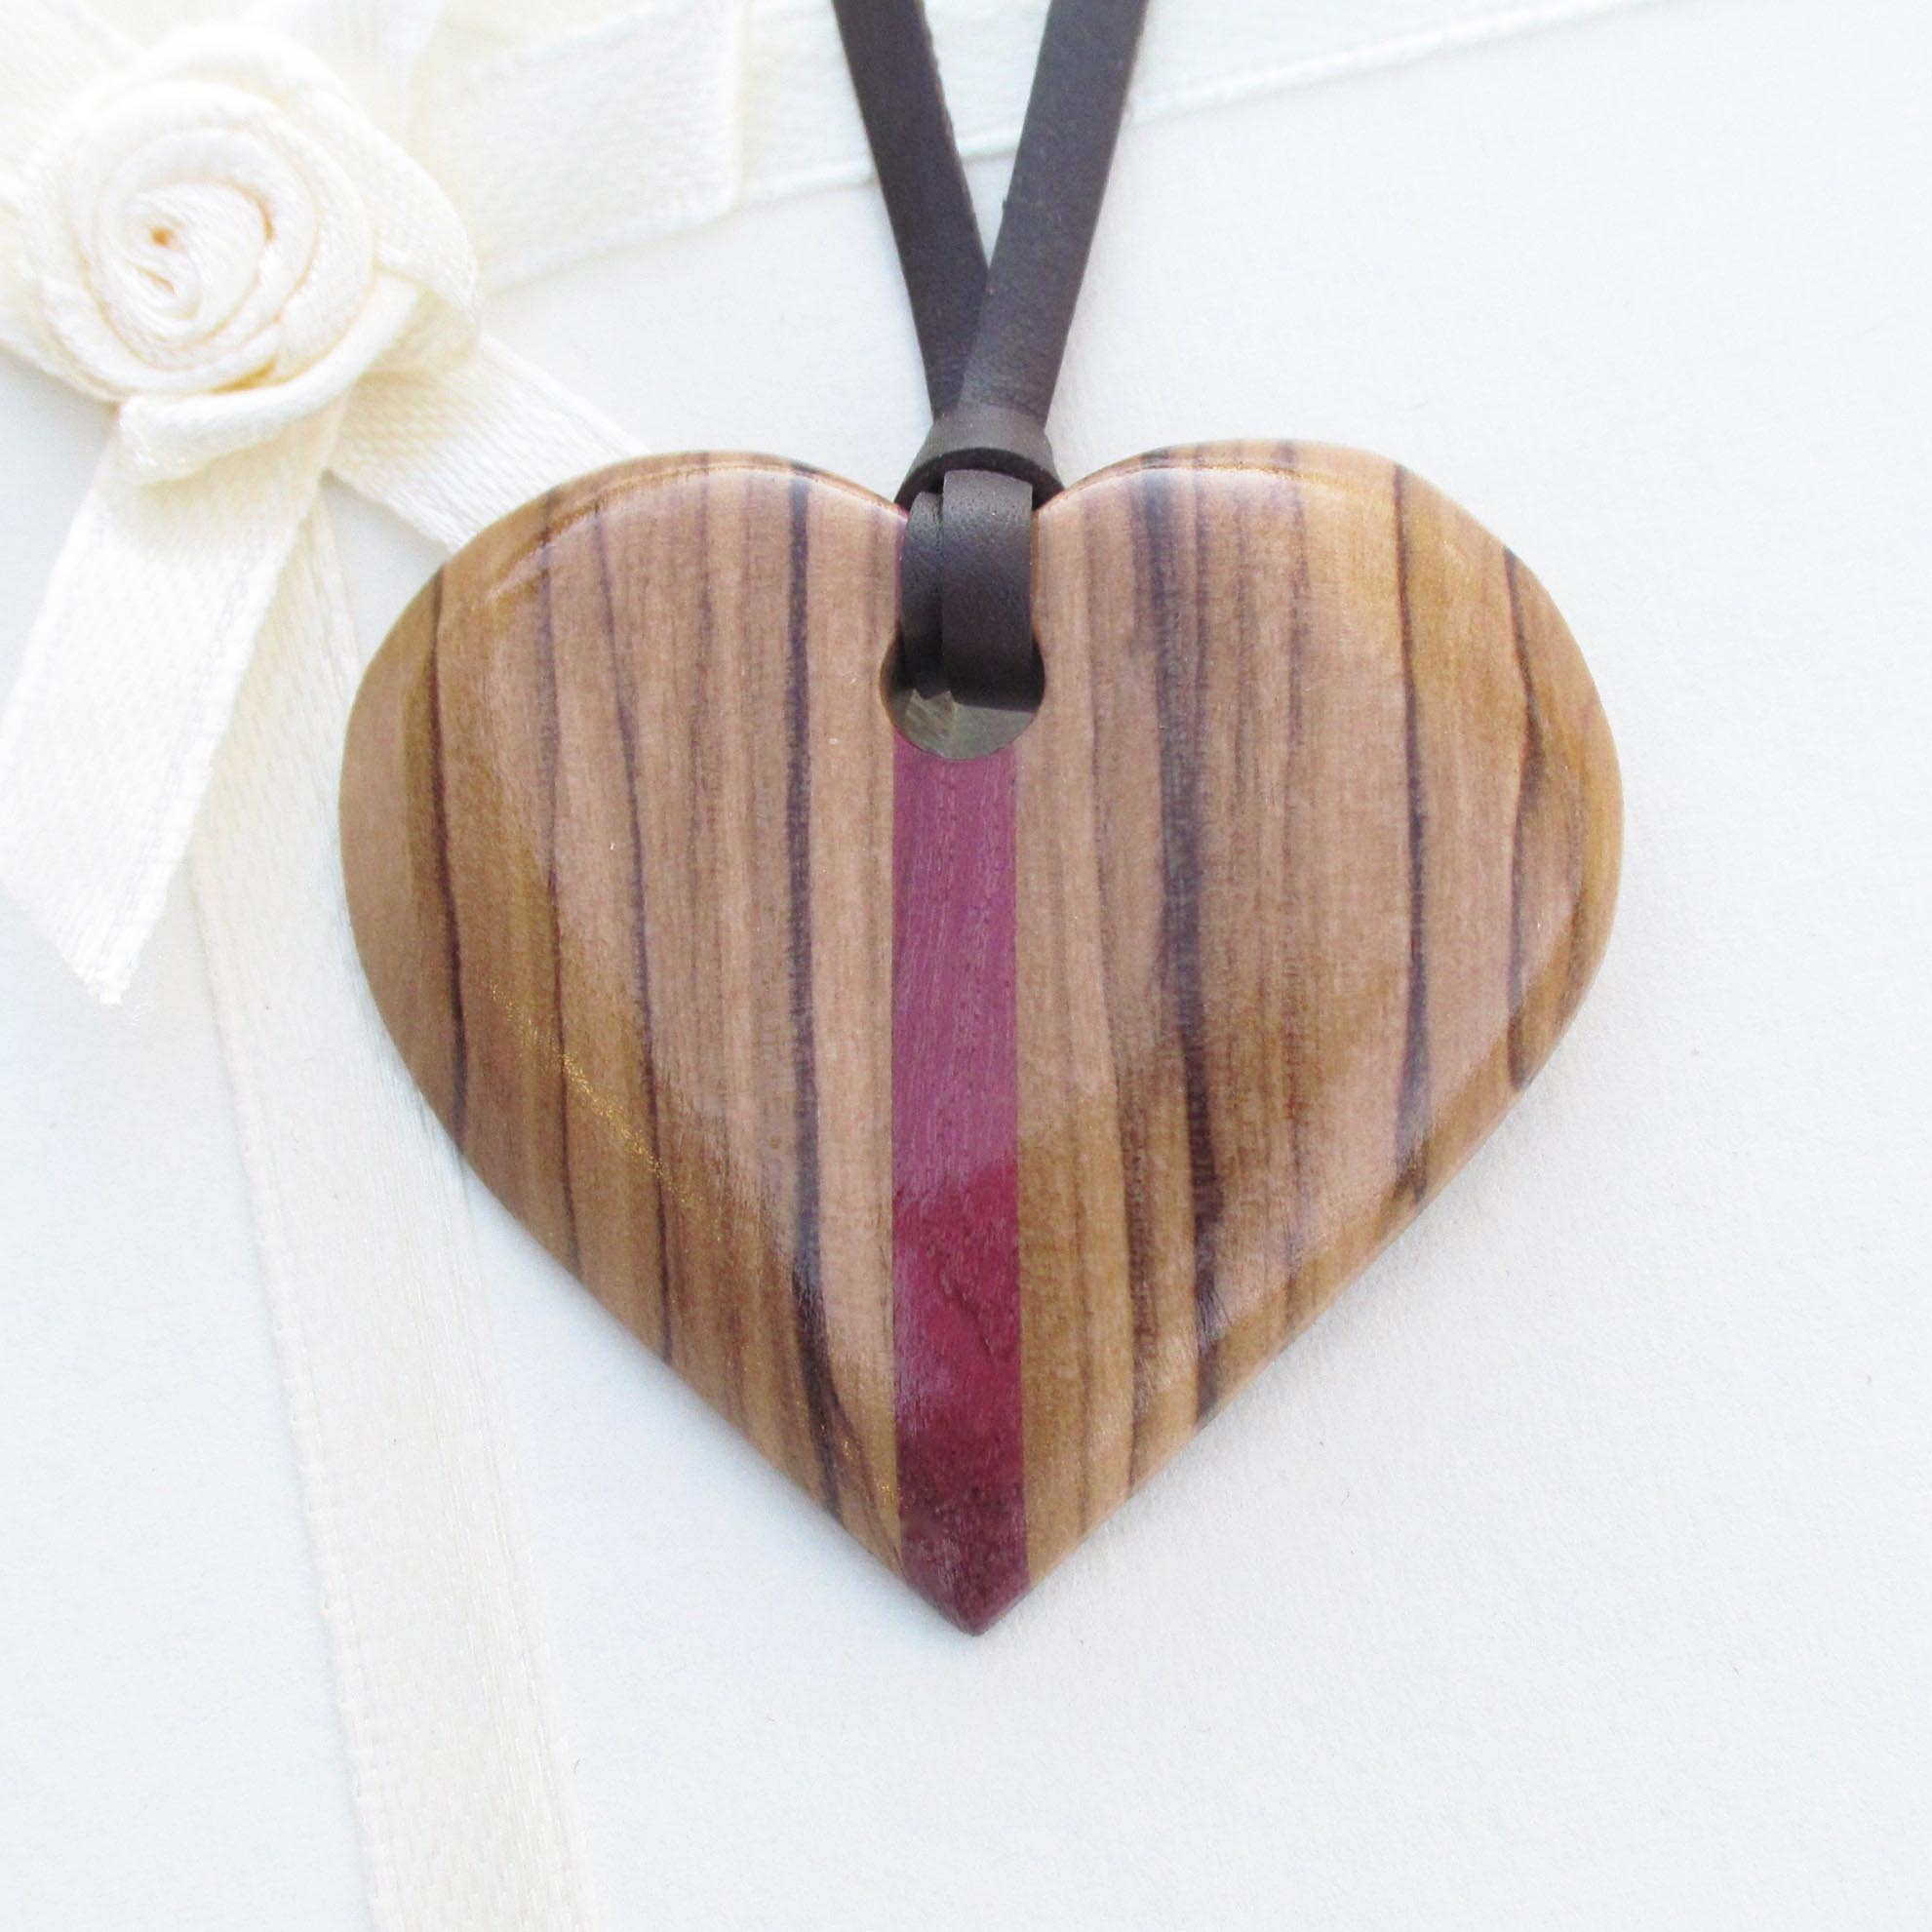 Wooden Jewellery - Handcrafted Wooden Pendants, Earrings, Bangles For Him And her